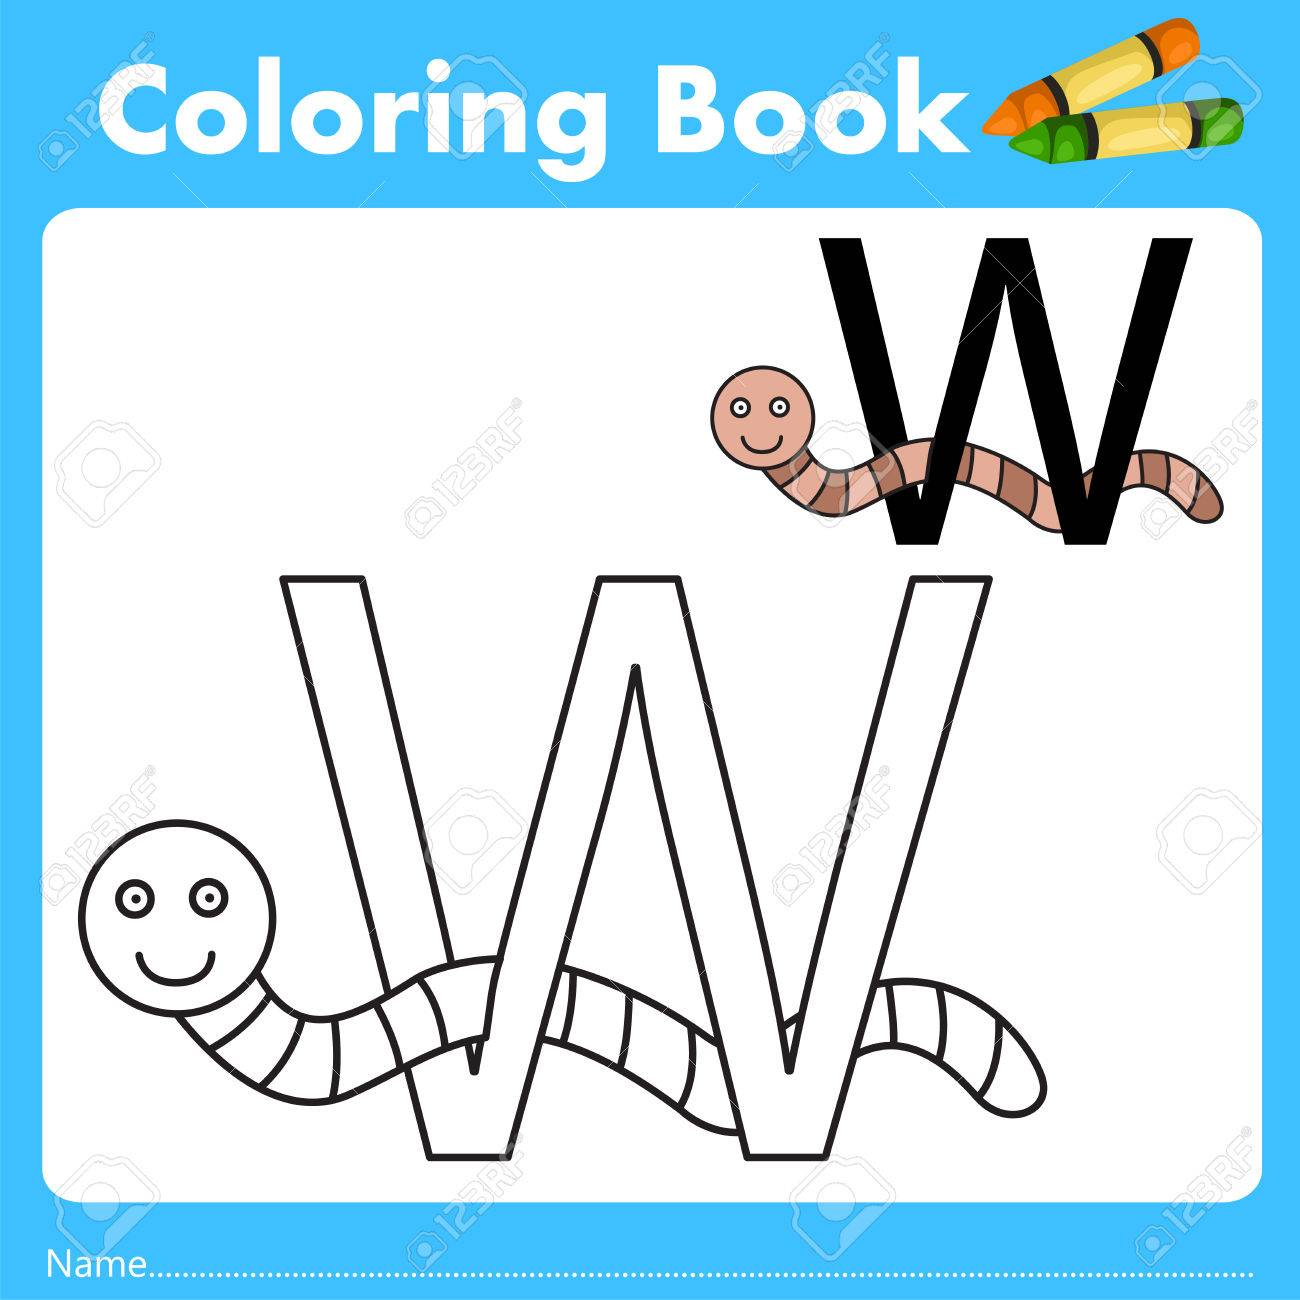 Book color illustrator - Illustrator Of Color Book With Worm Animal Stock Vector 66958051